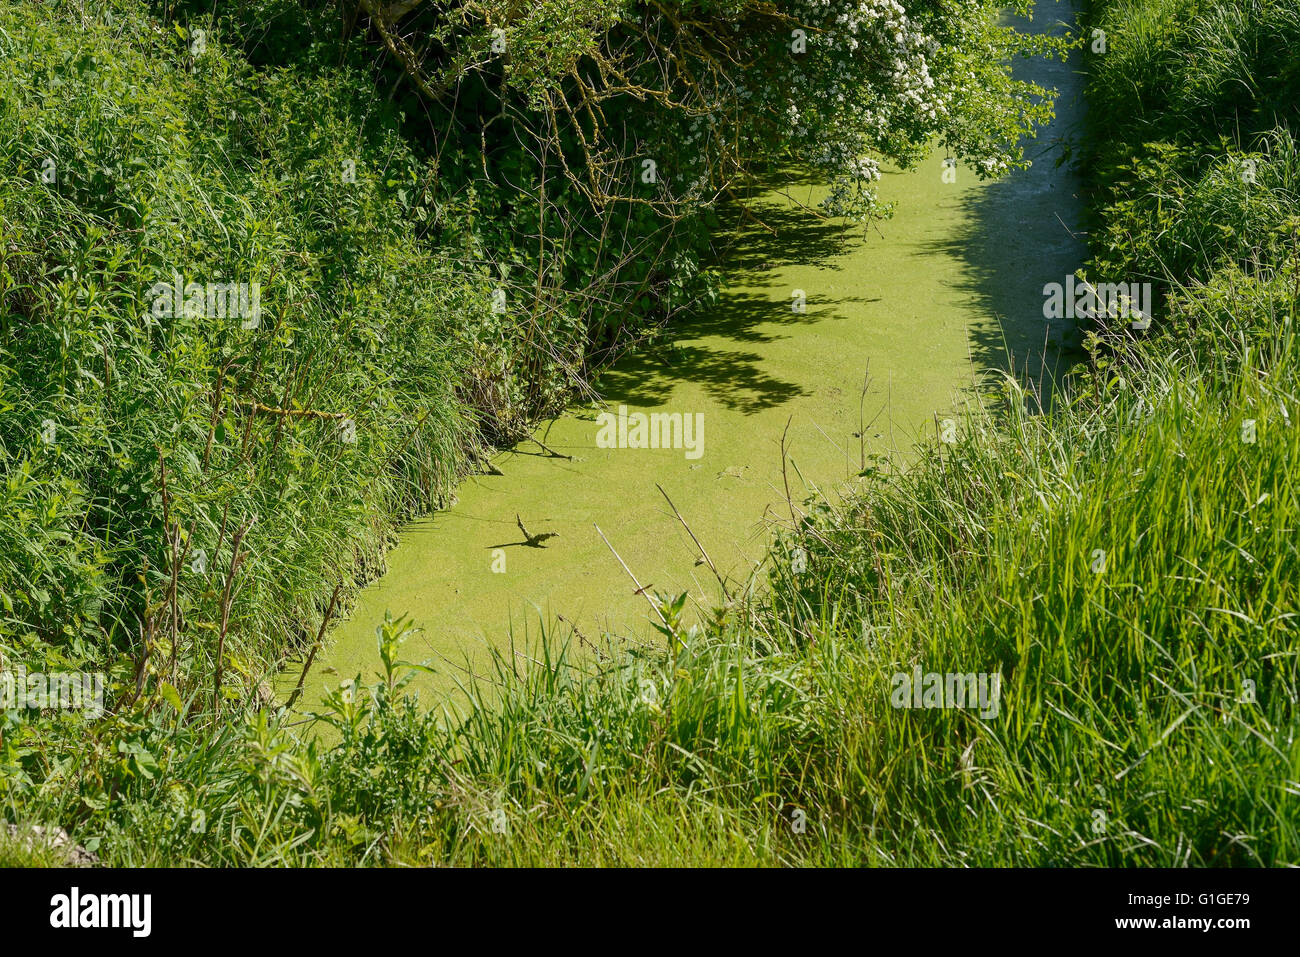 Green algae in a drainage ditch in UK countryside - Stock Image